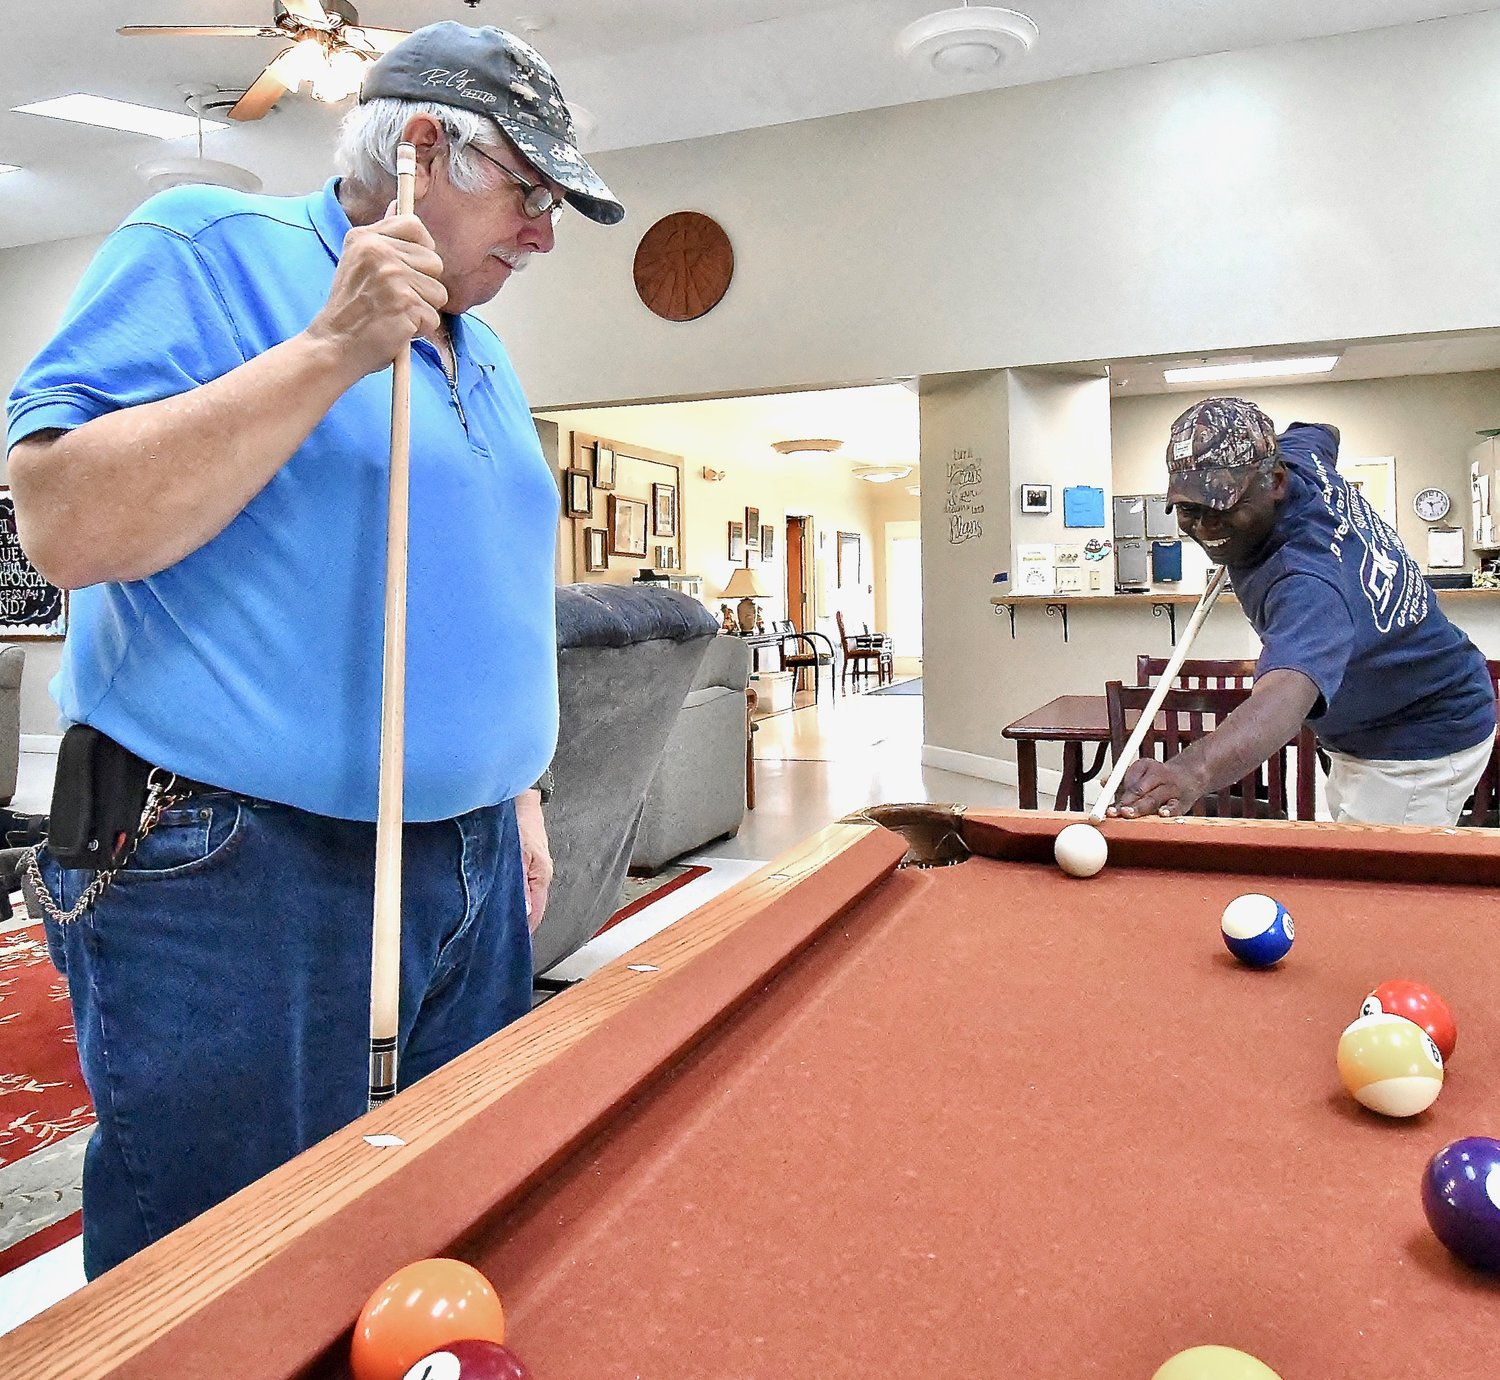 Hickory Log residents Charlie Morehead, right, and Sammy Harbin enjoy a game of pool in the facility's recreation room.